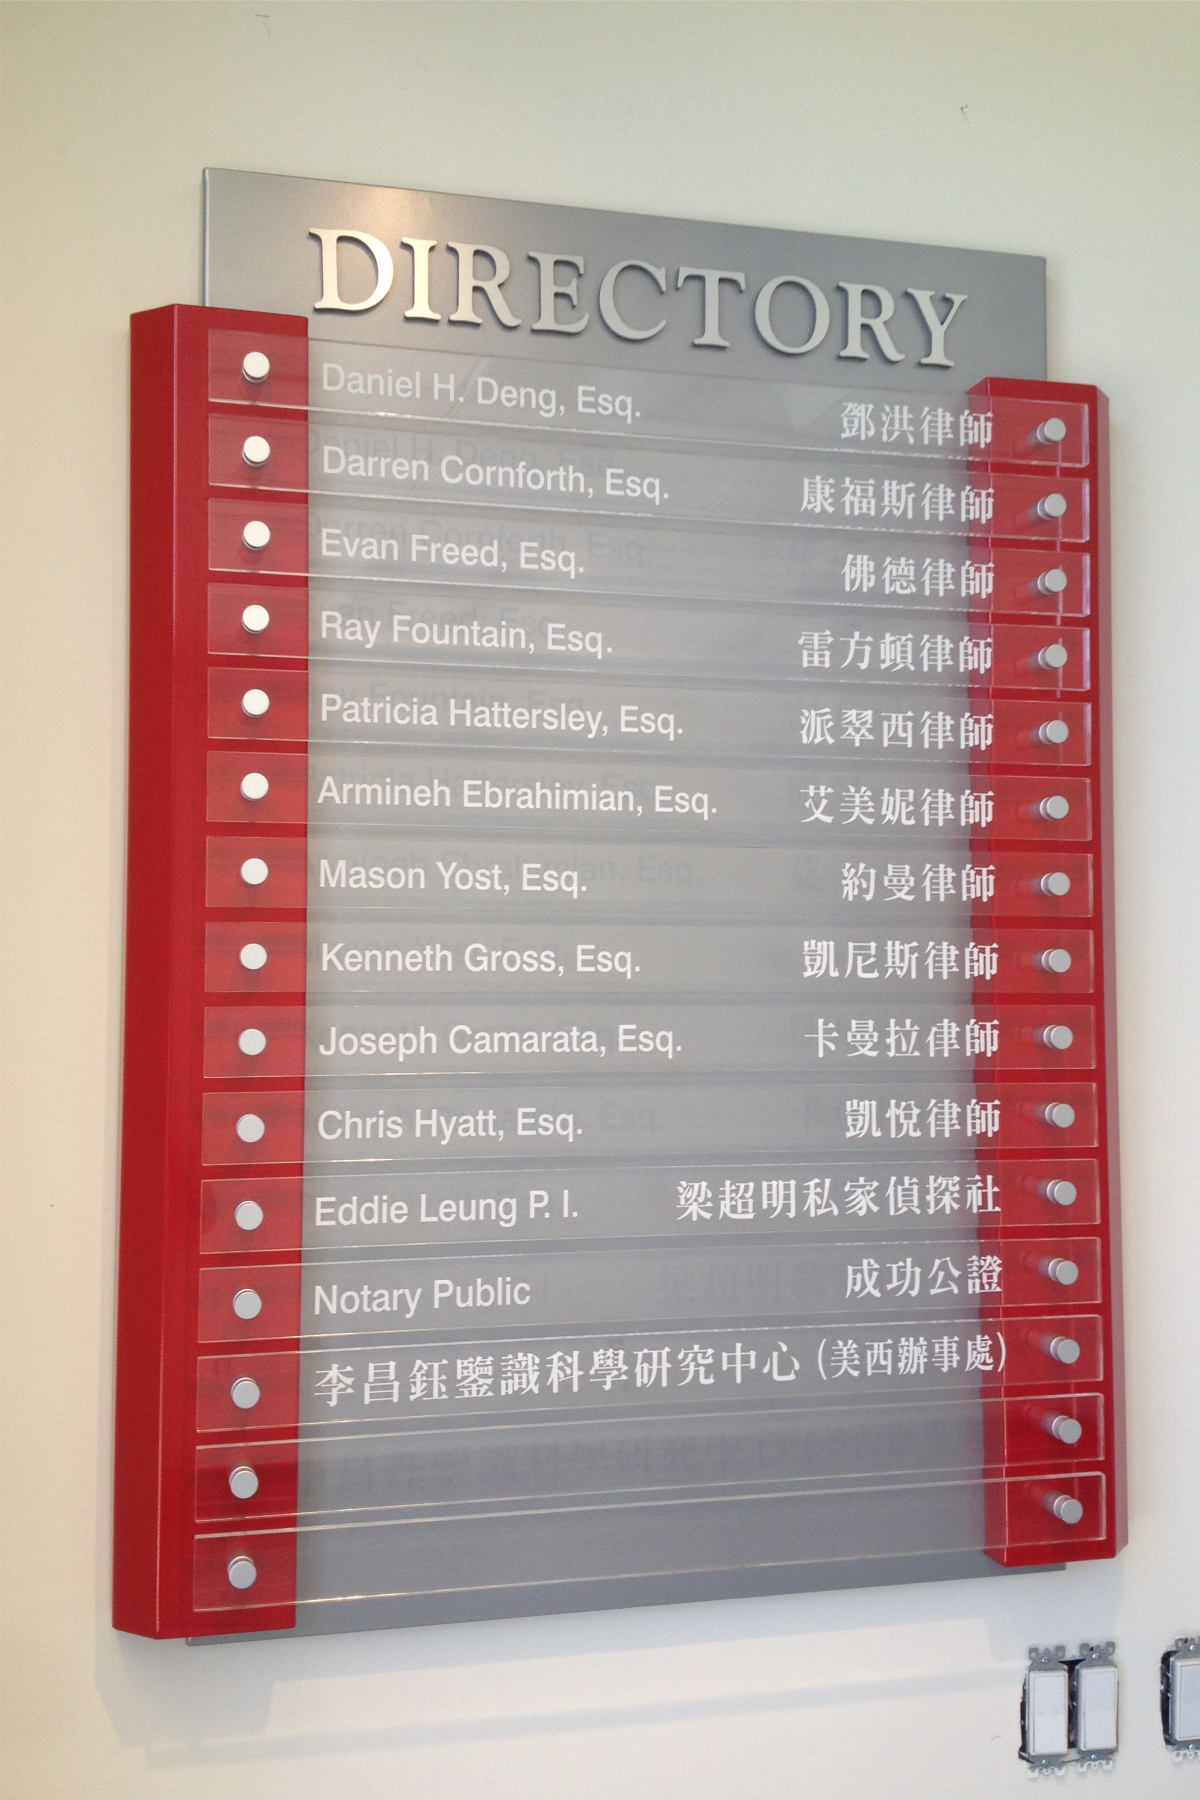 Deng Law Center